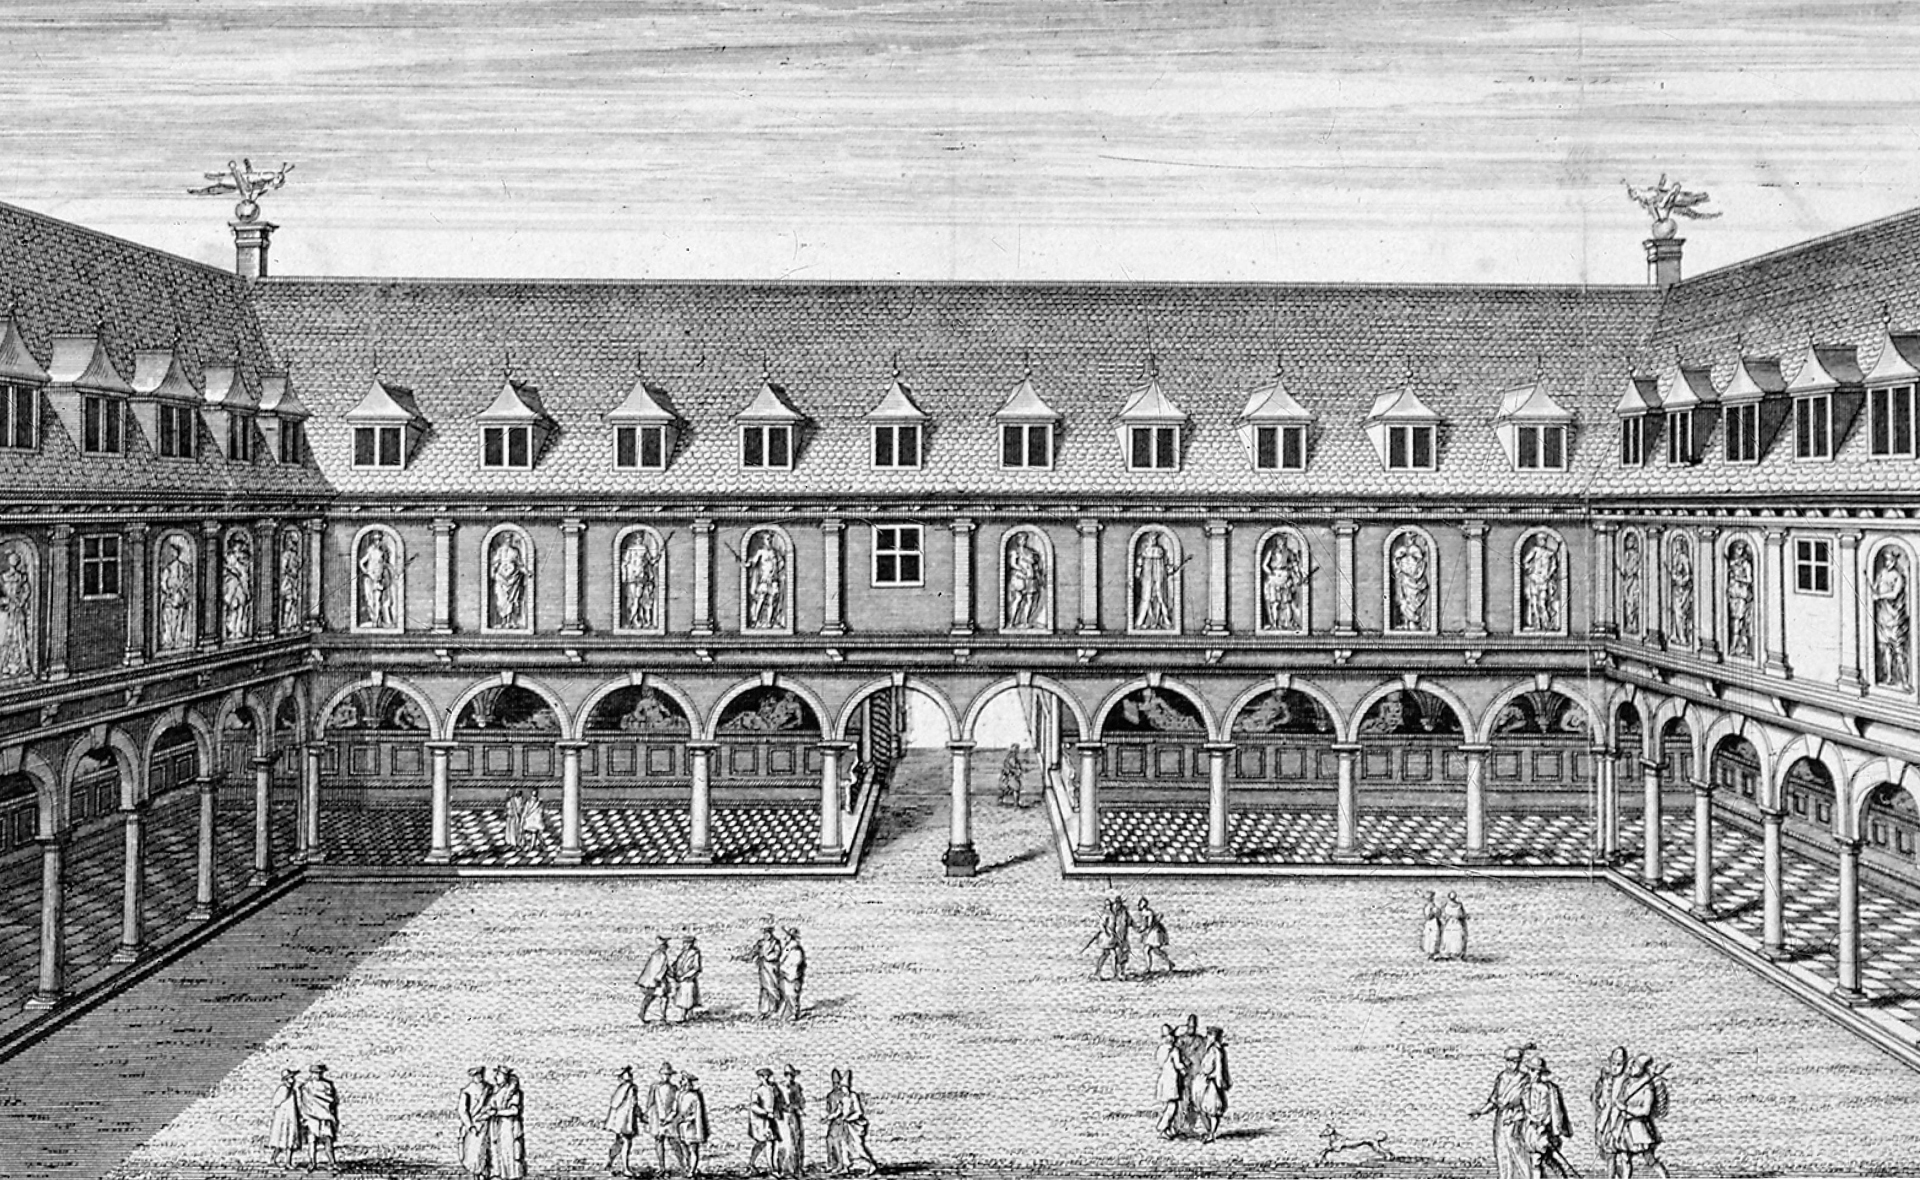 This illustration from c1660 depicts the two additional floors Gresham added to his original design for The Royal Exchange.